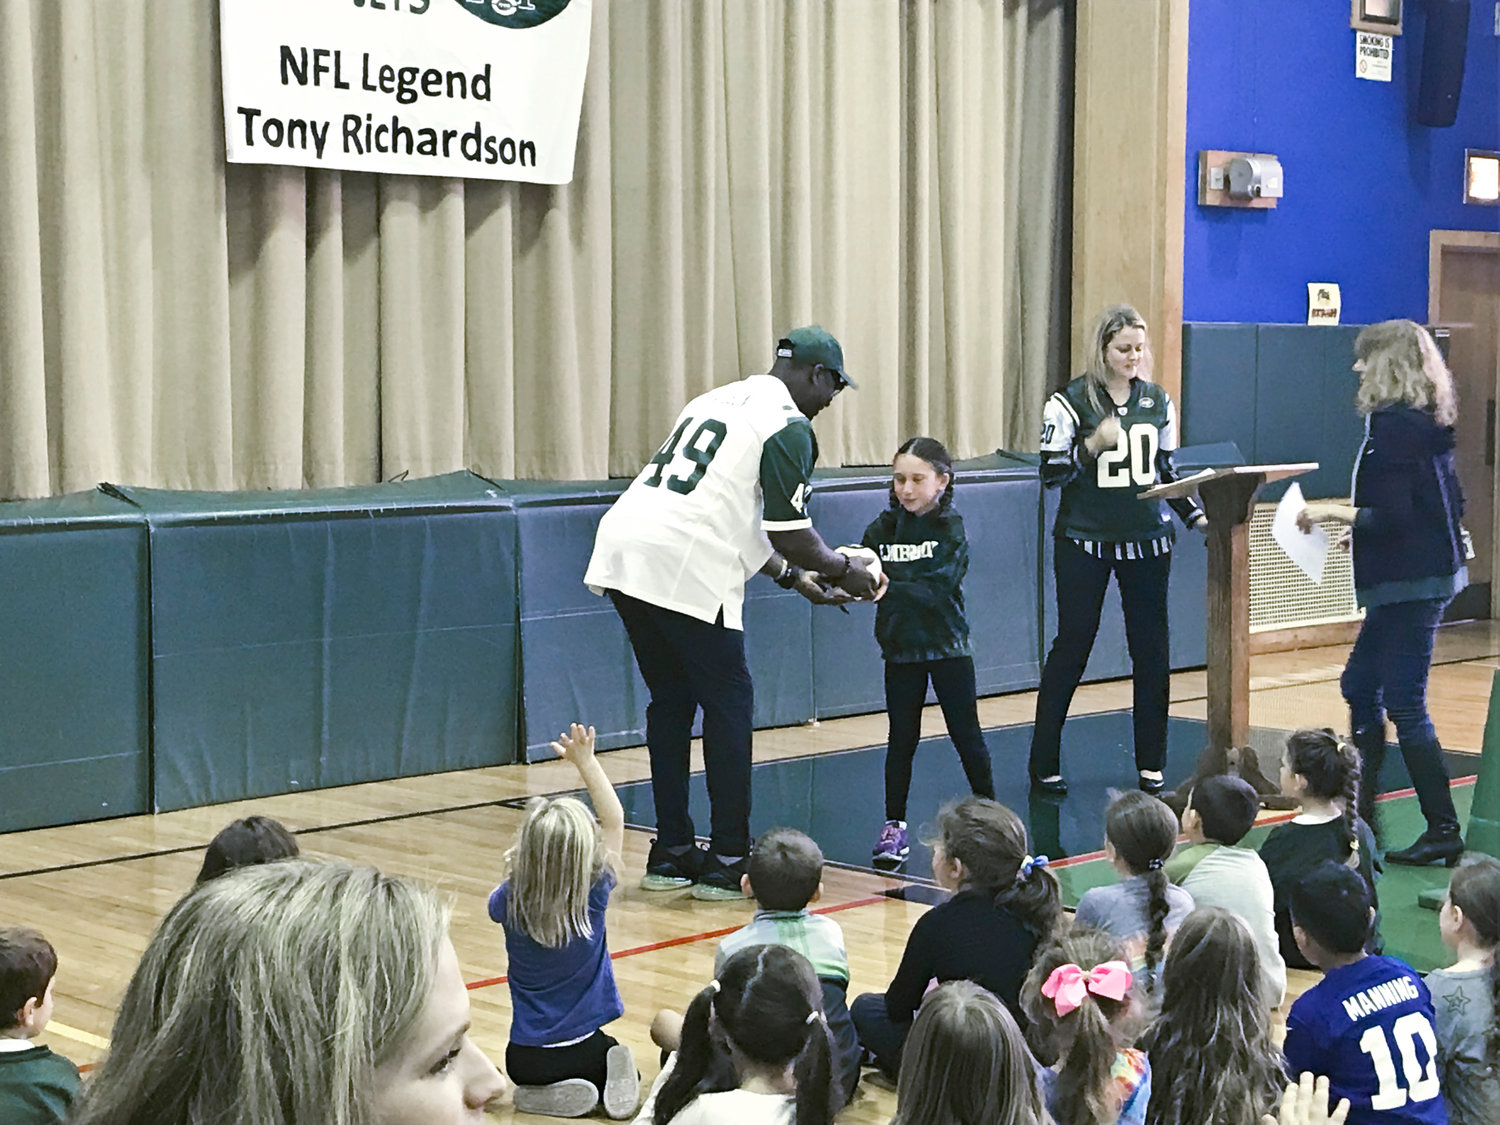 Fourth-grader Zoe Garver received a signed football from former Jets fullback Tony Richardson for correctly answering a question based on the health and wellness lessons students learned at Waverly Park School.